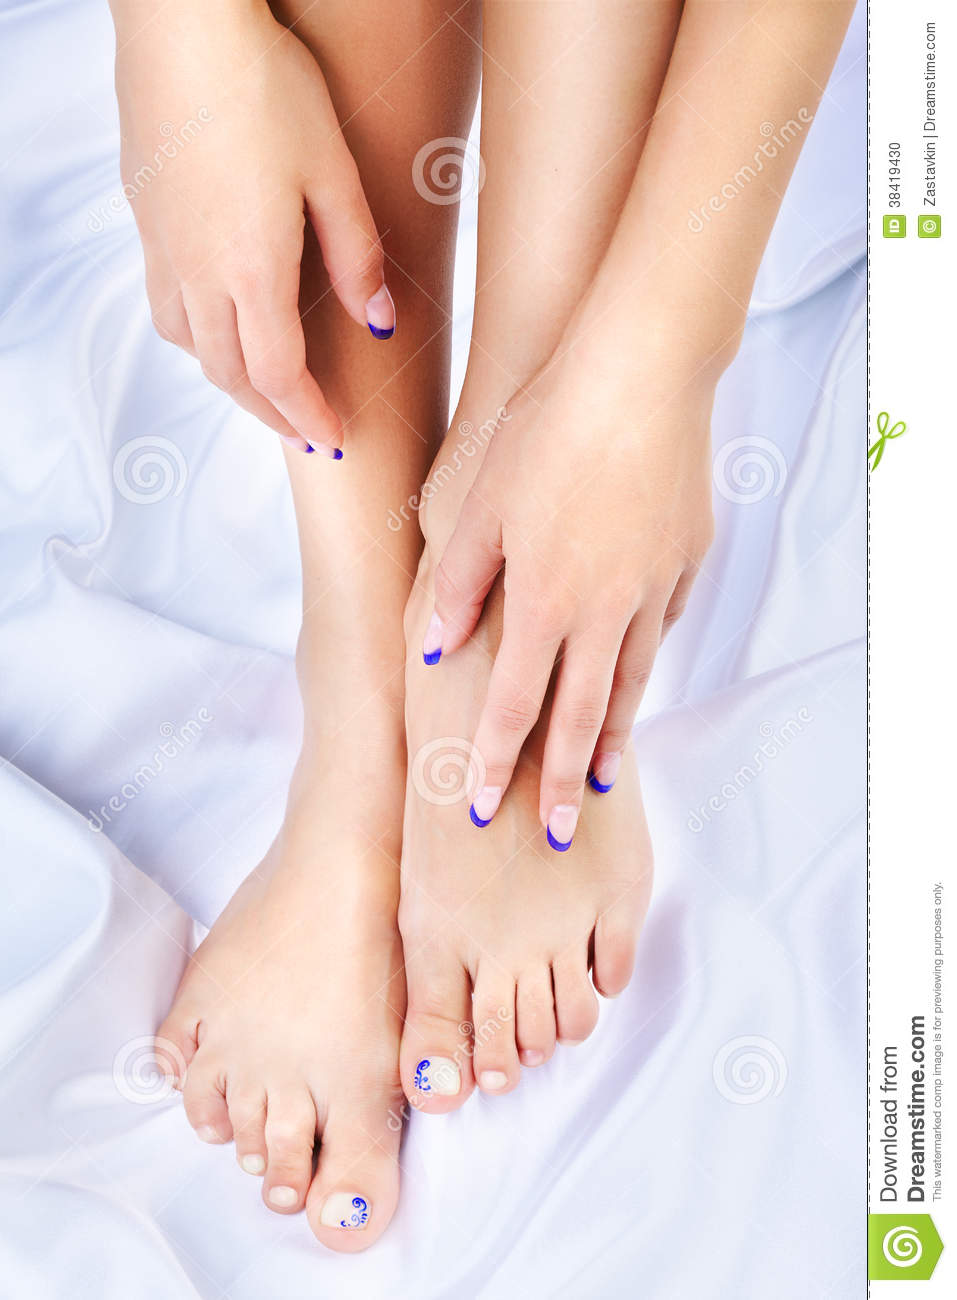 Healthy Feet And Hands Stock Photo - Image: 38419430